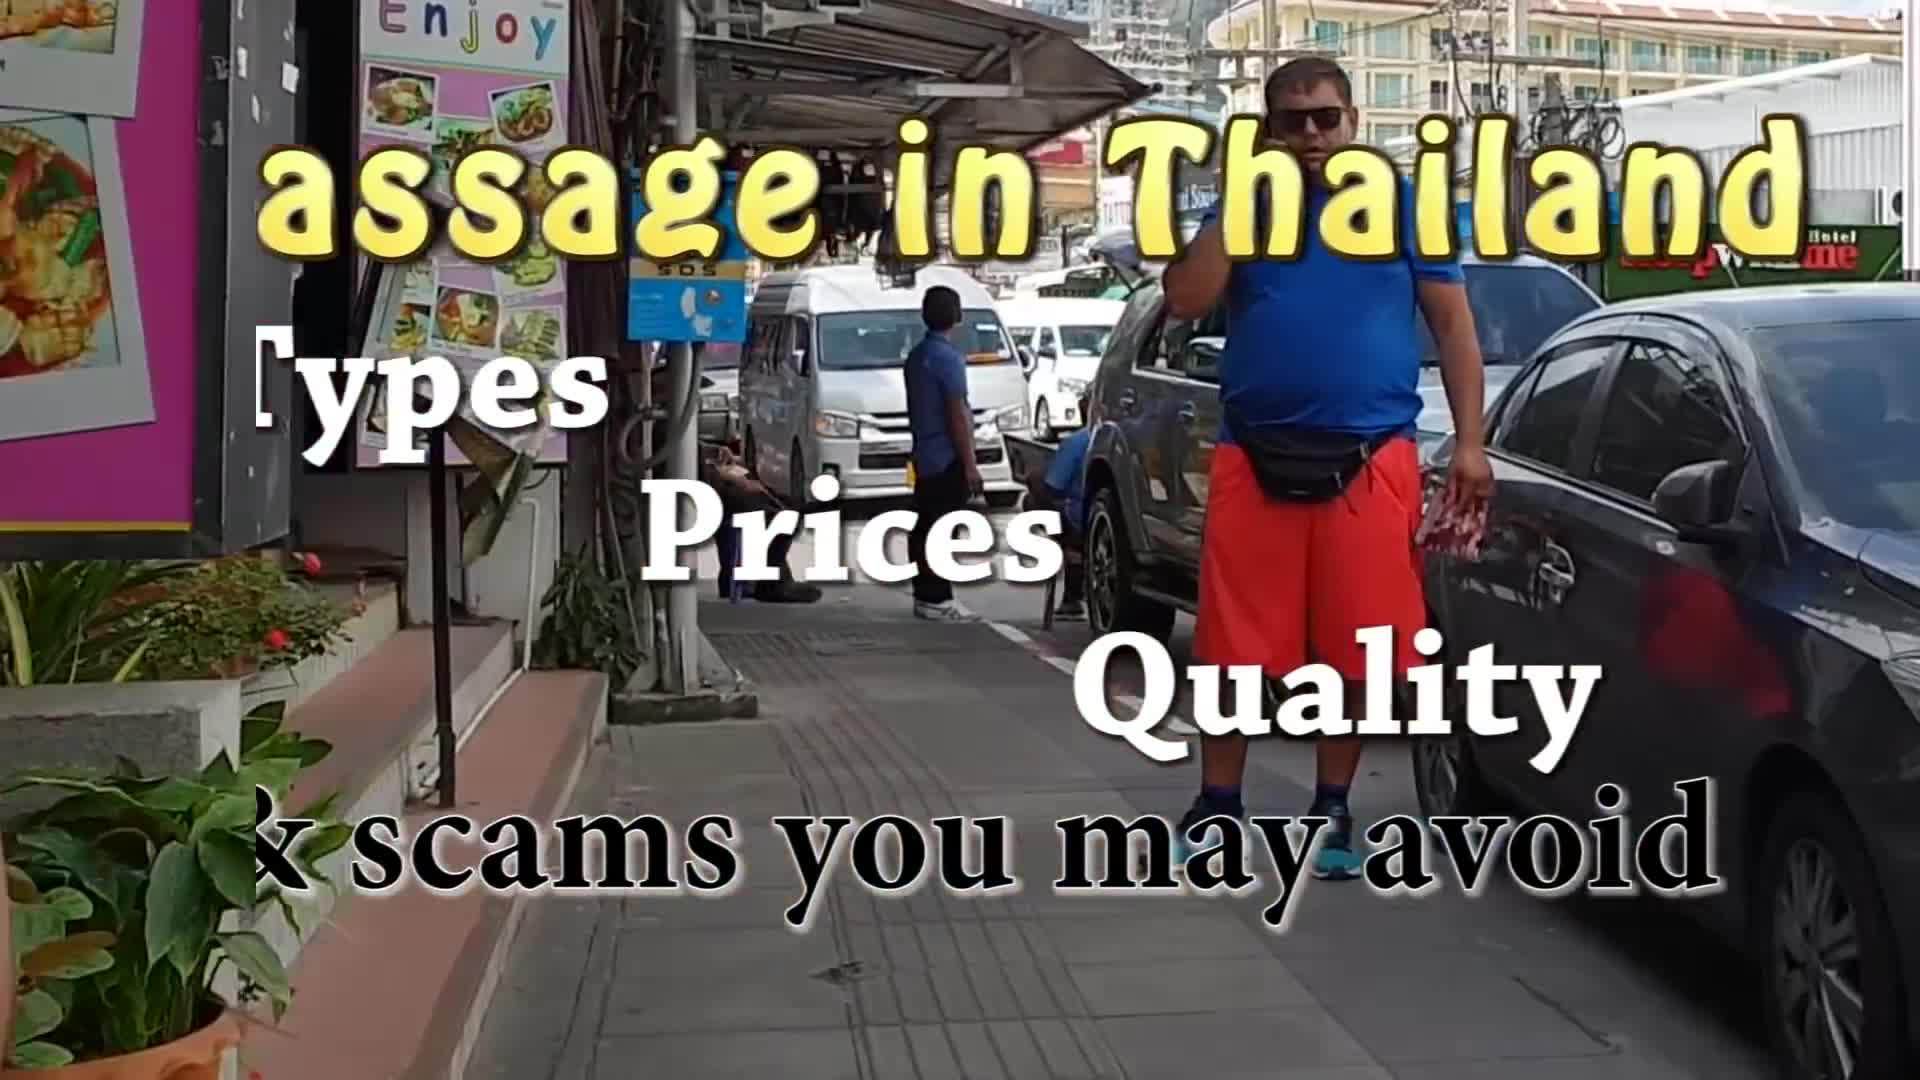 Travel & Events, annies massage bangkok, best massage shops in bangkok, best massage shops in phuket, christina massage patong, live love thailand, massage in bangkok and prices, massage prices in bangkok thailand, massage prices in thailand 2019, massage services & prices in bangkok, massage shops sacms in thailand, massage types & prices in thailand, patong beach massage shops, type of massages in bangkok, what are the prices of massage in thailand, where to have a good massage in thailand, Massage in Thailand - Types, Prices, Quality & scams you may avoid #livelovethailand GIFs